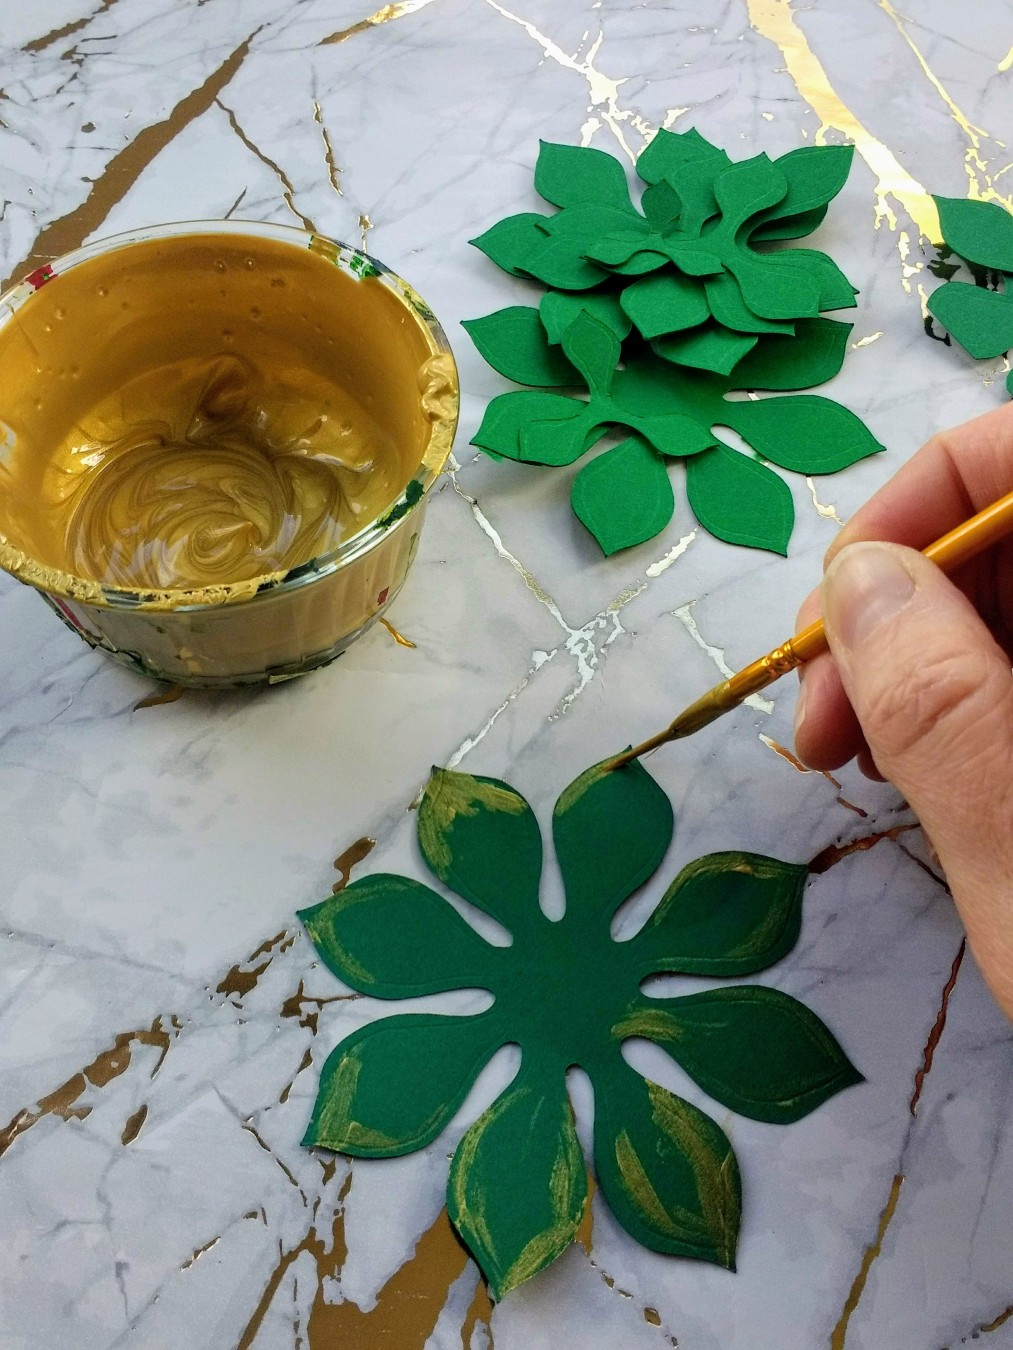 Image of a hand painting some green paper flowers with gold paint